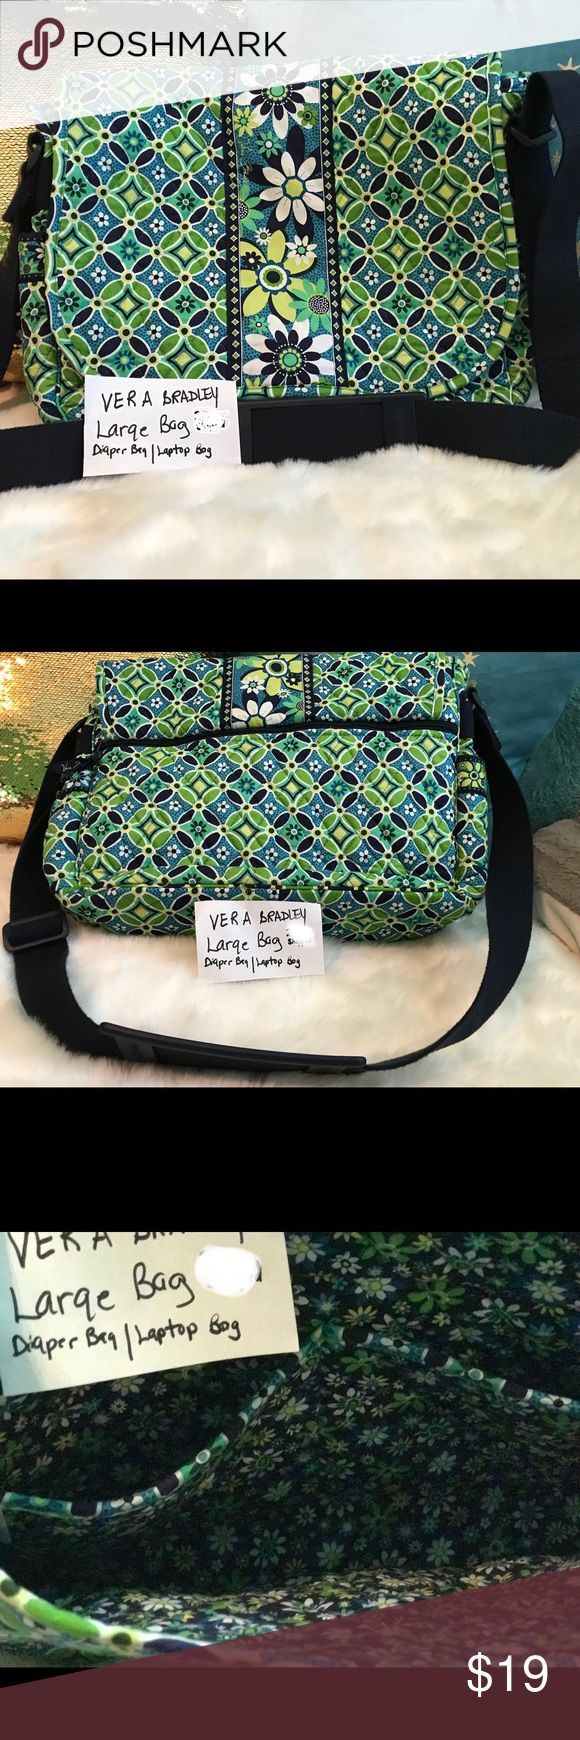 Vera bradley laptop bag/diaper bag, carry all Excellent condition, with several compartments as shown in pics. Large enough to use for a laptop or as a diaper bag Bags Laptop Bags